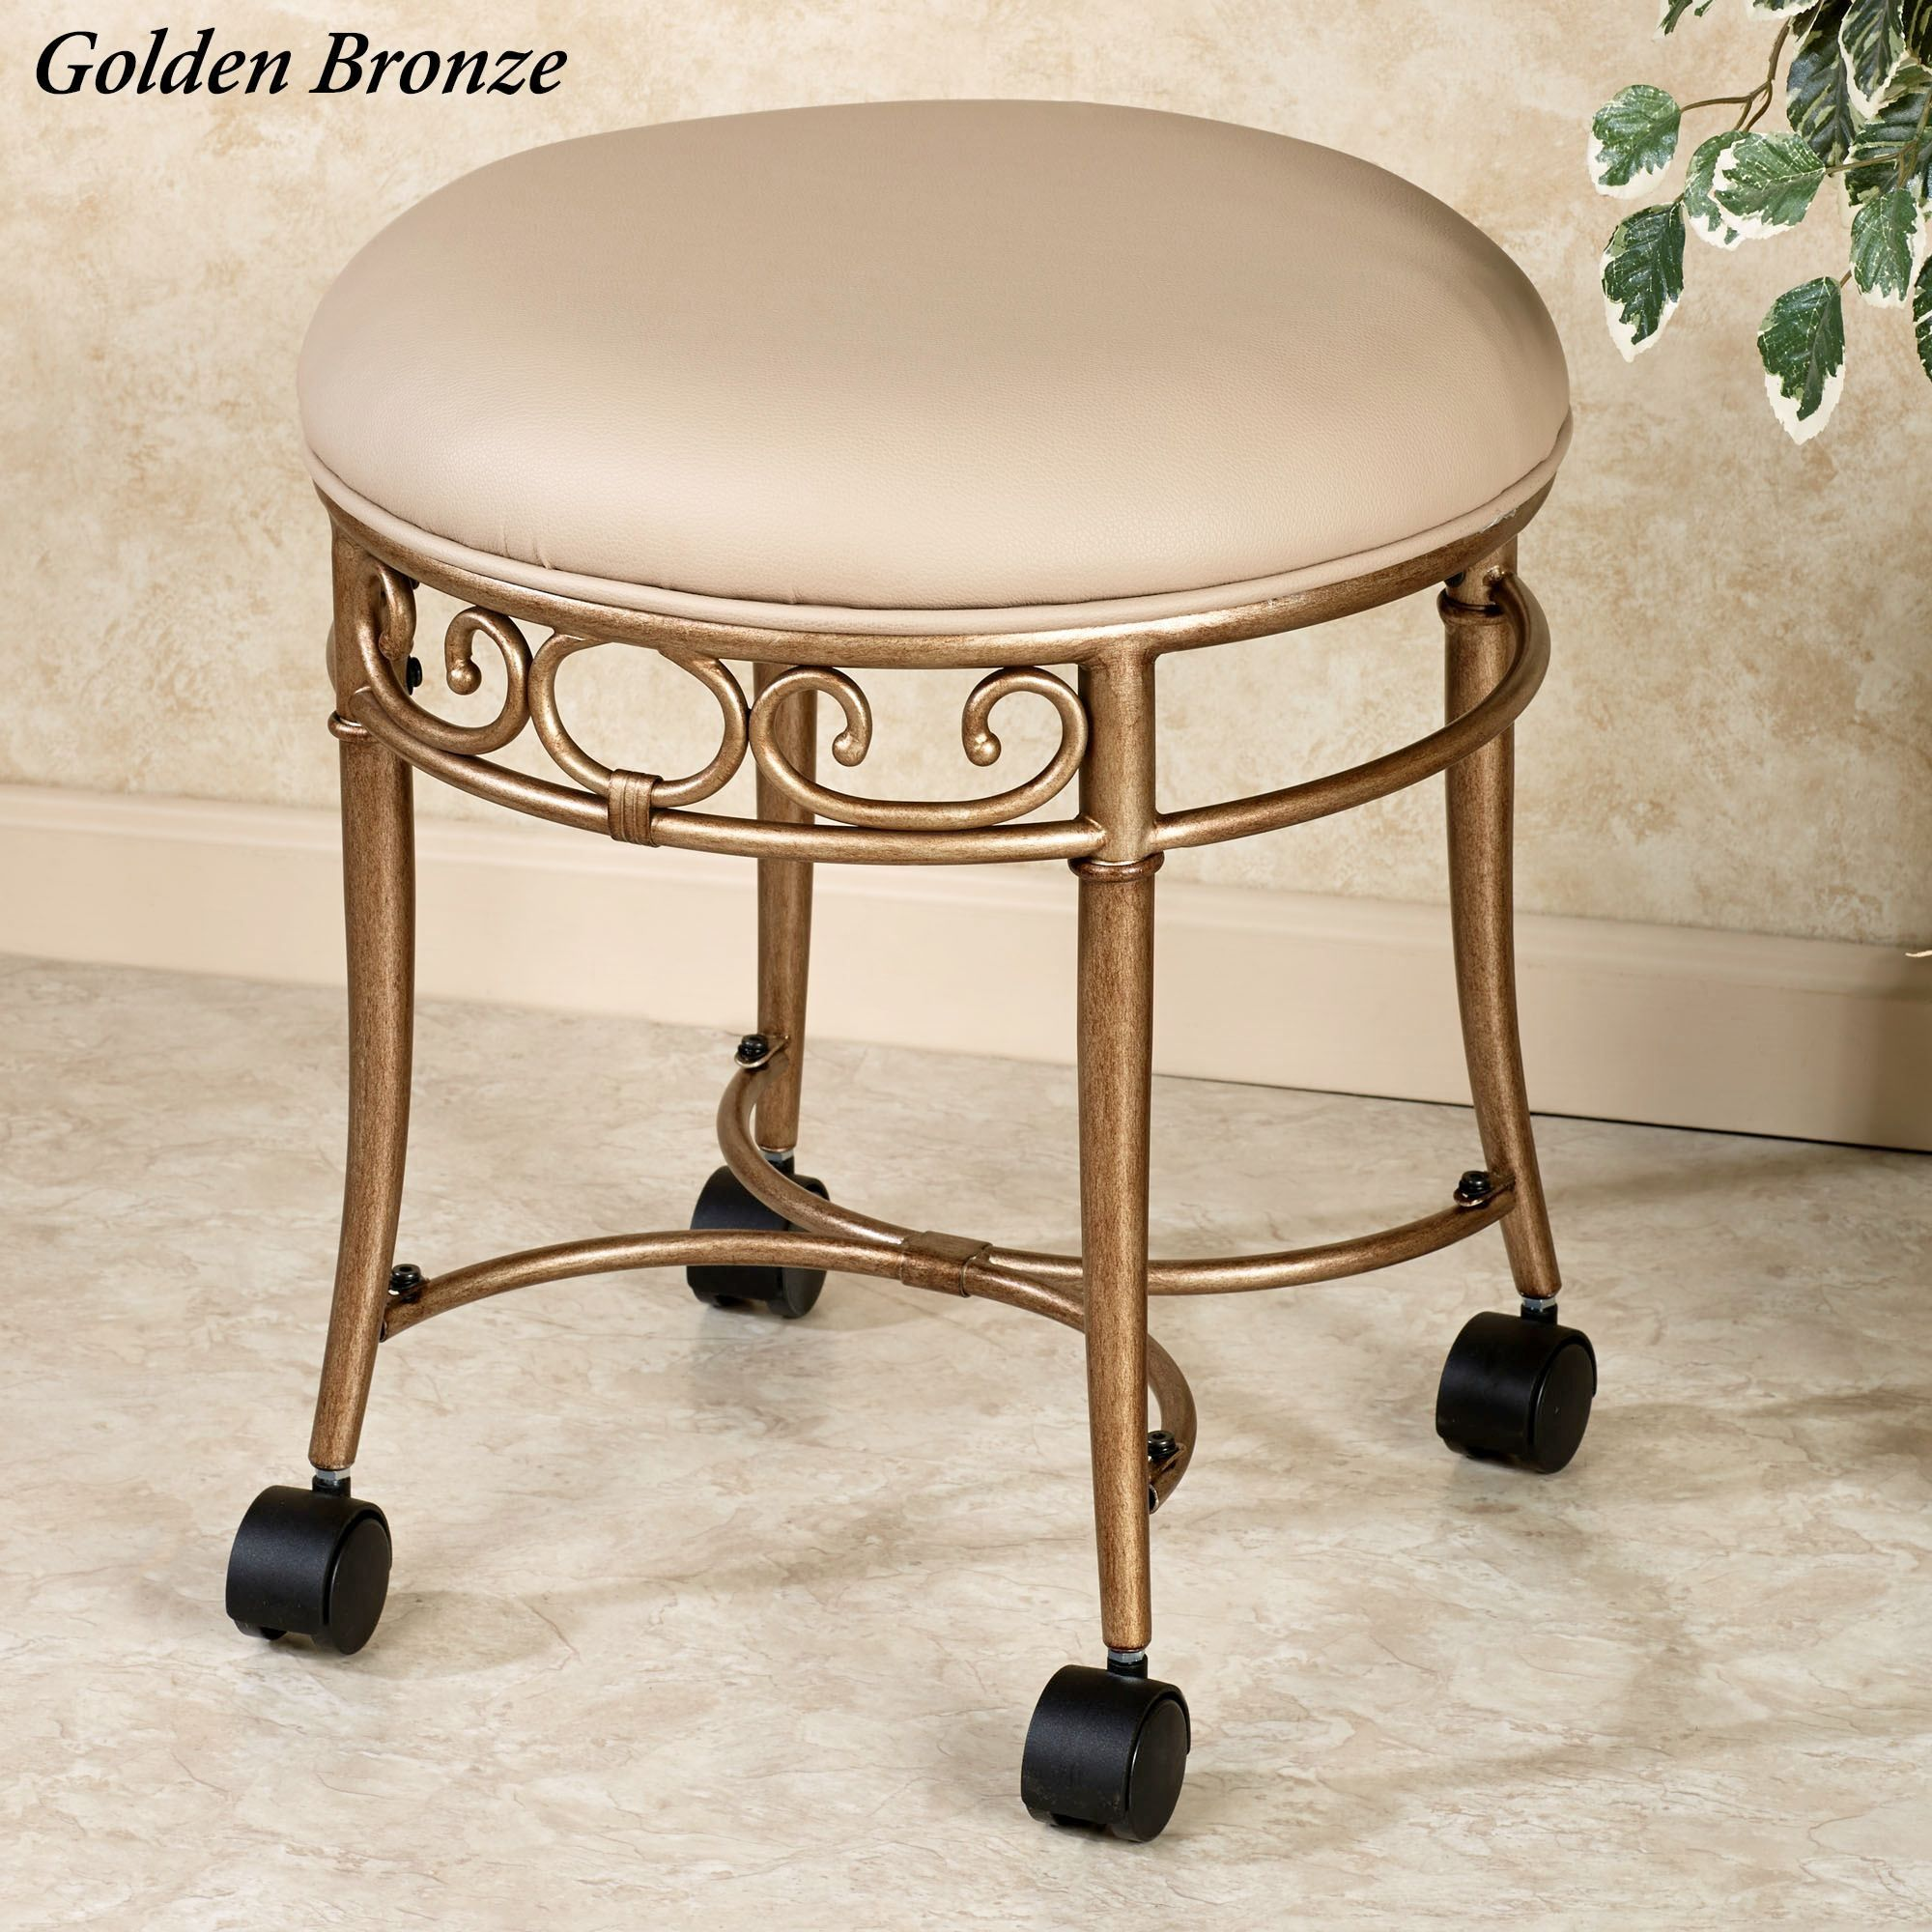 Brilliant Mcclare Vanity Stool Furniture Vanity Stool Bathroom Gmtry Best Dining Table And Chair Ideas Images Gmtryco